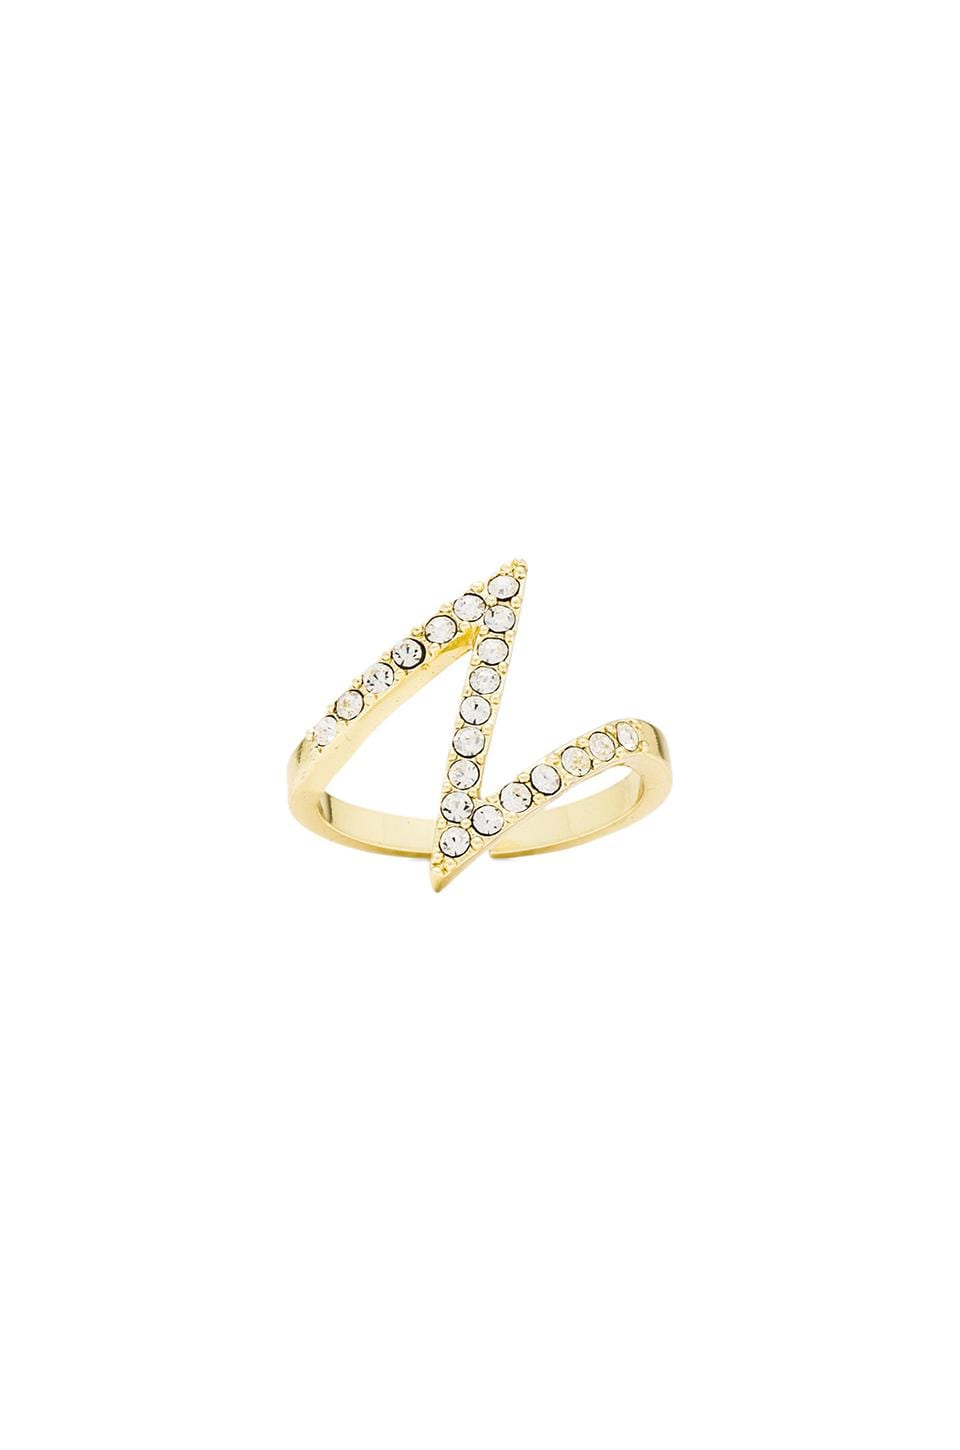 Lisa Freede Bowie Ring in Yellow Gold